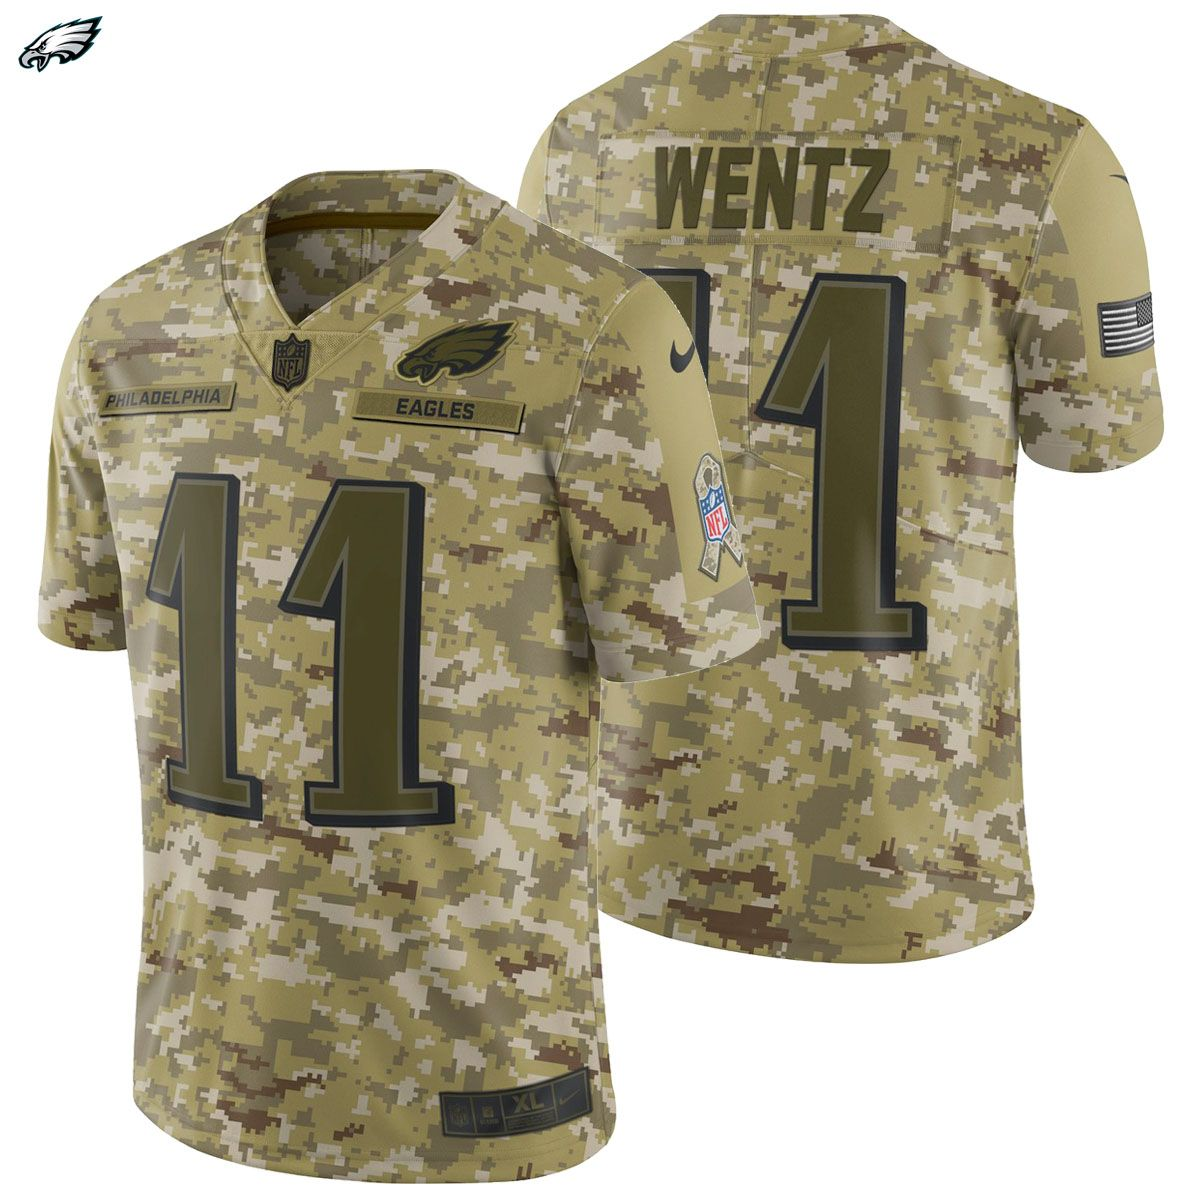 4342b976442 Carson Wentz Nike 2018 Salute to Service Limited Jersey Philadelphia Eagles  Army Salute The Troops! The NEW 2018 Salute To service Line Is Finally Here!